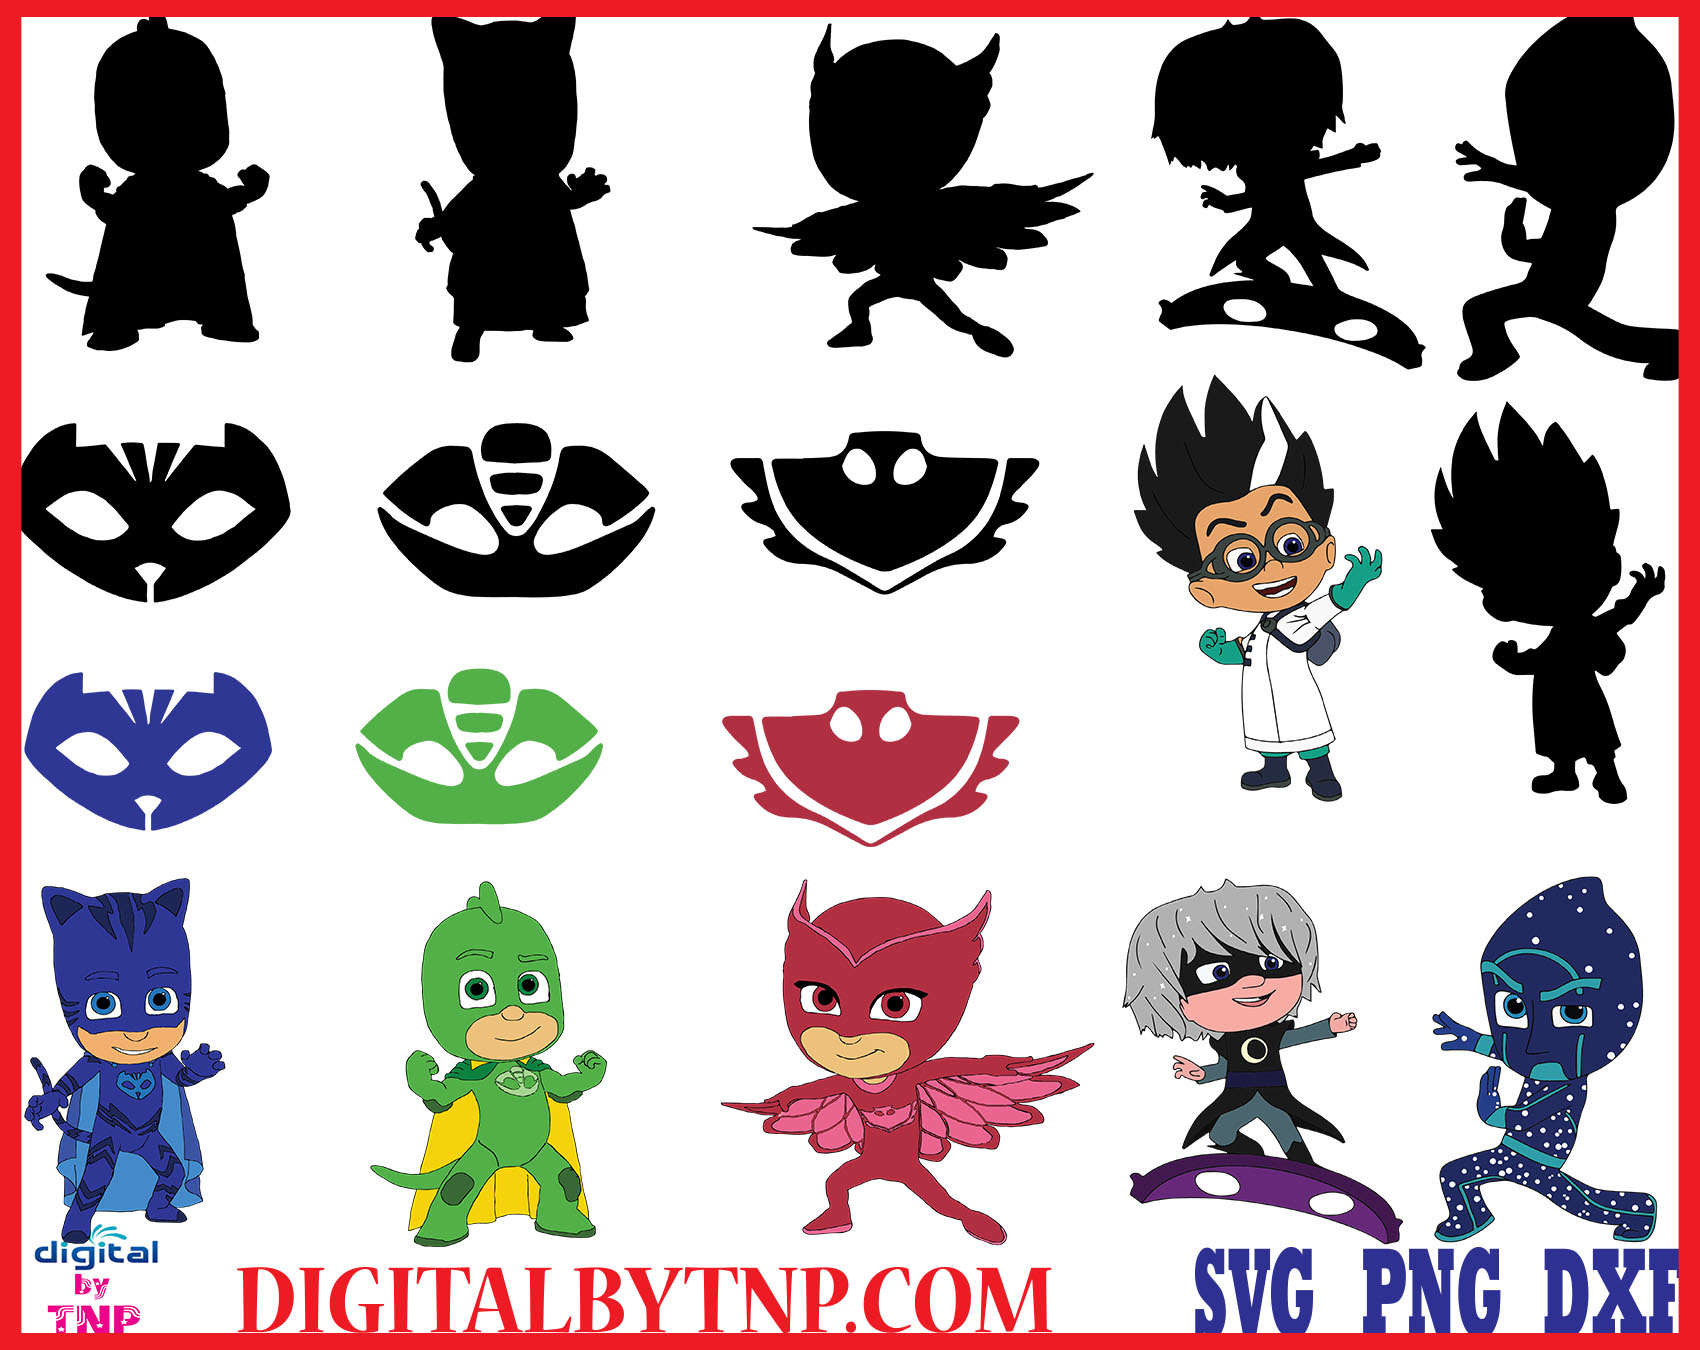 Pj Masks Clipart Pj Masks Svg Png Eps Pj Masks Silhouette Pj Masks Characters Gekko Catboy Owlette Lunetta Night Ninja Romeo Customer Satisfaction Is Our Priority